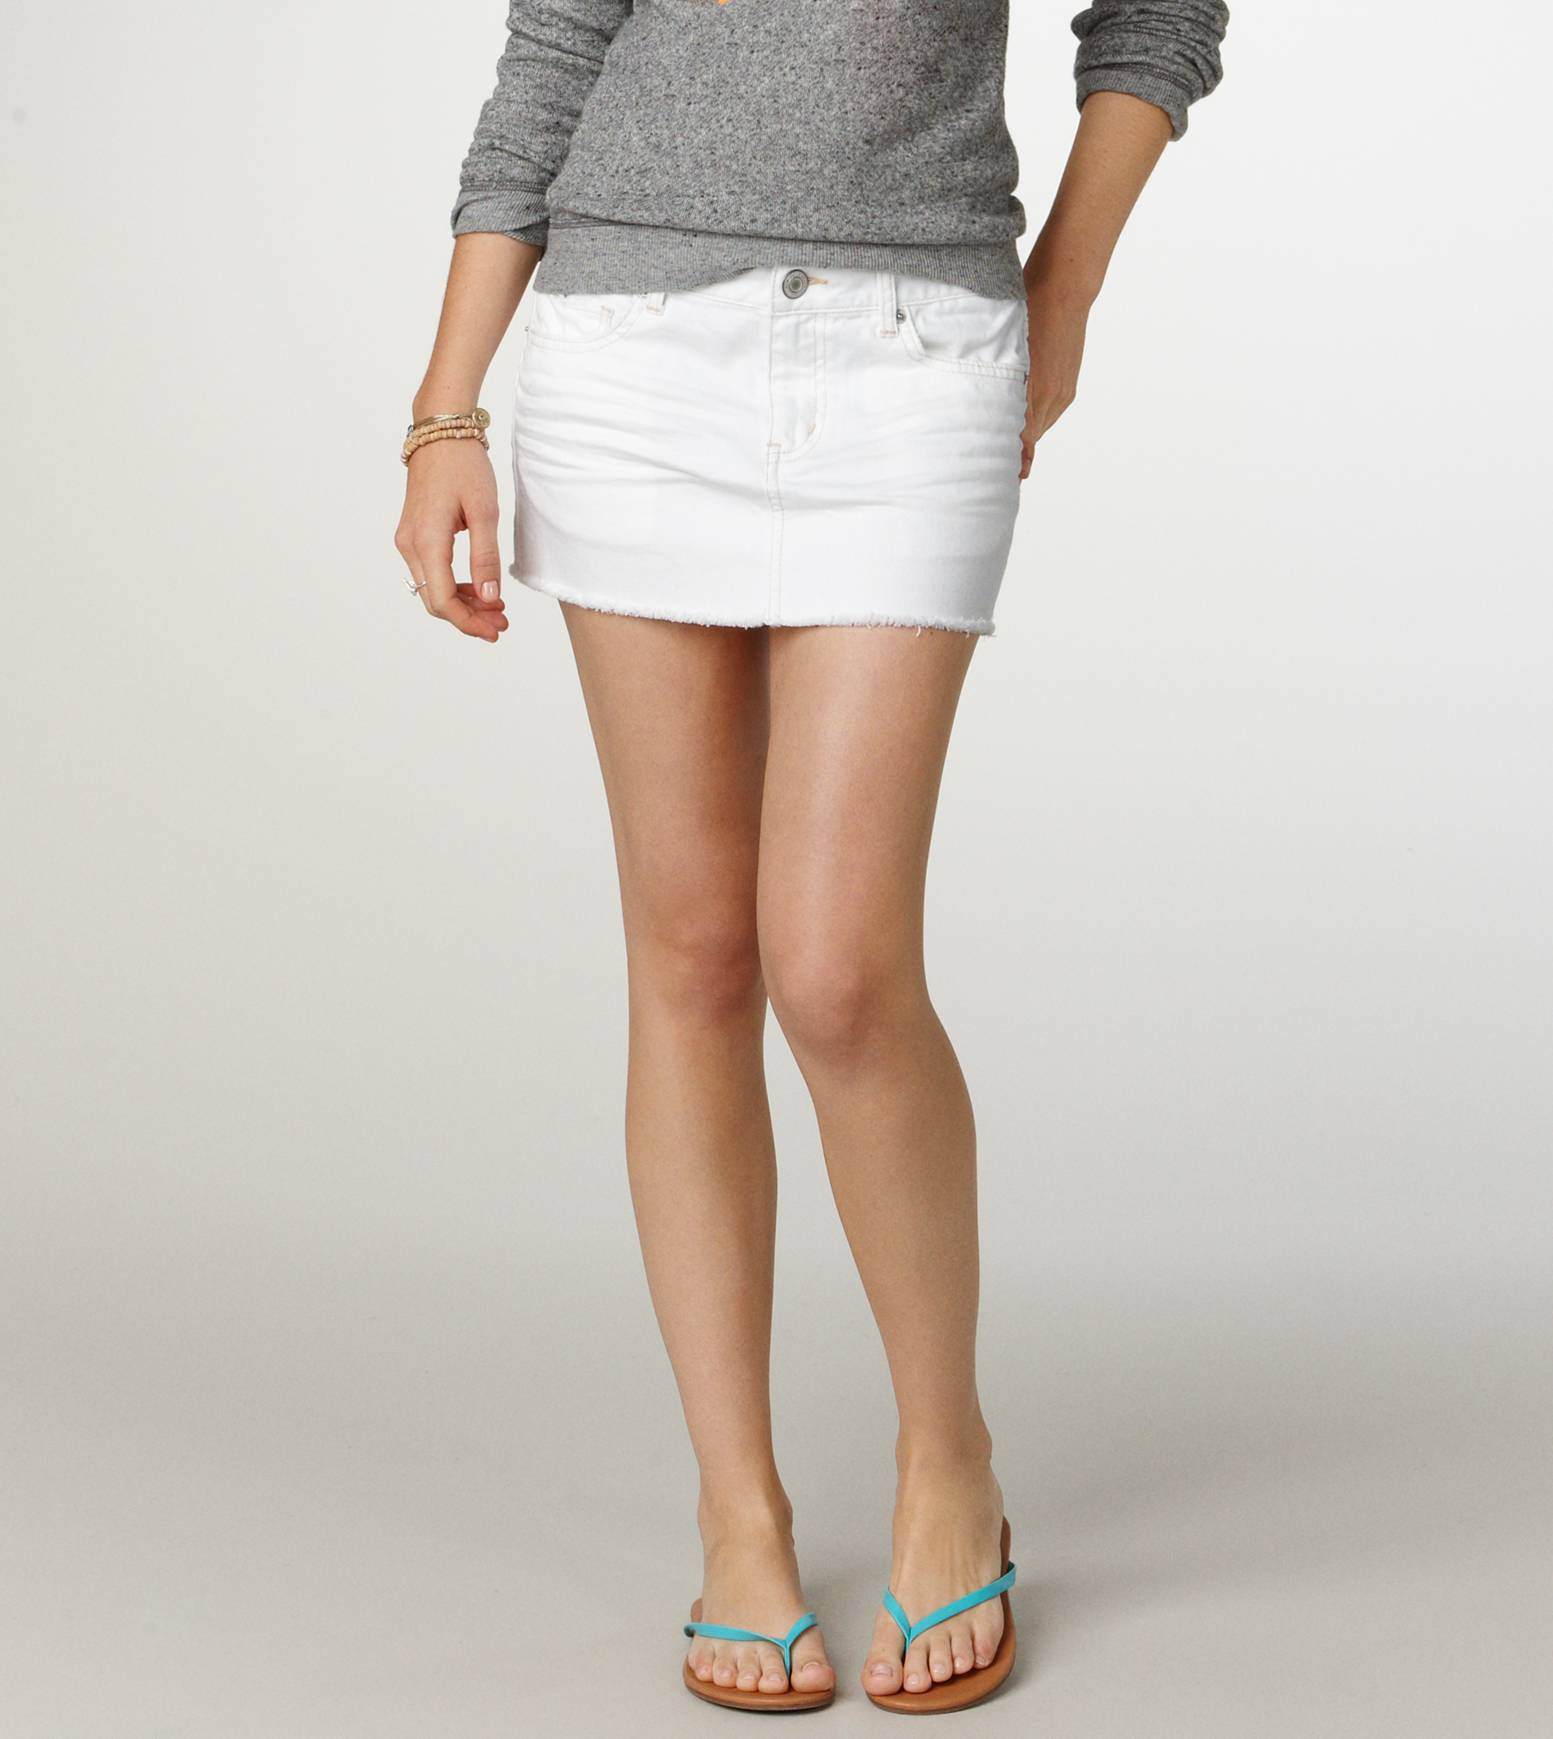 White Jean Skirt - Jeans Am